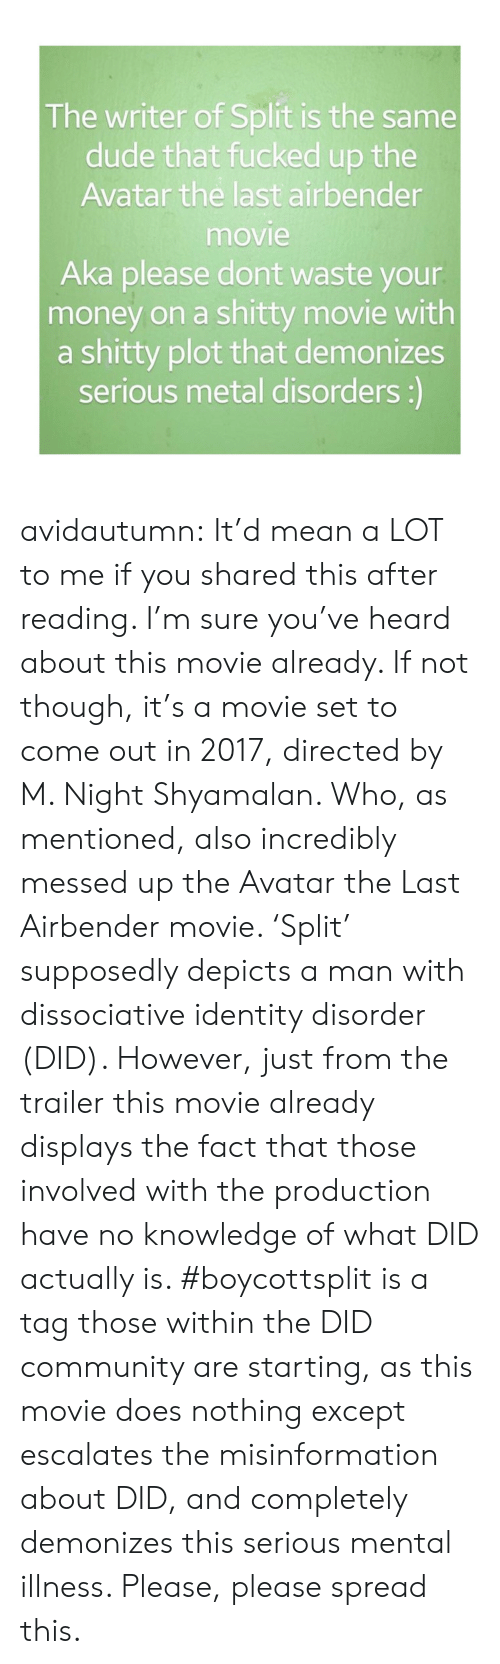 m night shyamalan: The writer of Split is the same  dude that fucked up the  Avatar the last airbender  movie  Aka please dont waste your  money on a shitty movie with  a shitty plot that demonizes  serious metal disorders:) avidautumn:  It'd mean a LOT to me if you shared this after reading.   I'm sure you've heard about this movie already.   If not though, it's a movie set to come out in 2017, directed by  M. Night Shyamalan. Who, as mentioned, also incredibly messed up the Avatar the Last Airbender movie. 'Split' supposedly depicts a man with dissociative identity disorder (DID).   However, just from the trailer this movie already displays the fact that those involved with the production have no knowledge of what DID actually is.   #boycottsplit is a tag those within the DID community are starting, as this movie does nothing except escalates the misinformation about DID, and completely demonizes this serious mental illness.   Please, please spread this.